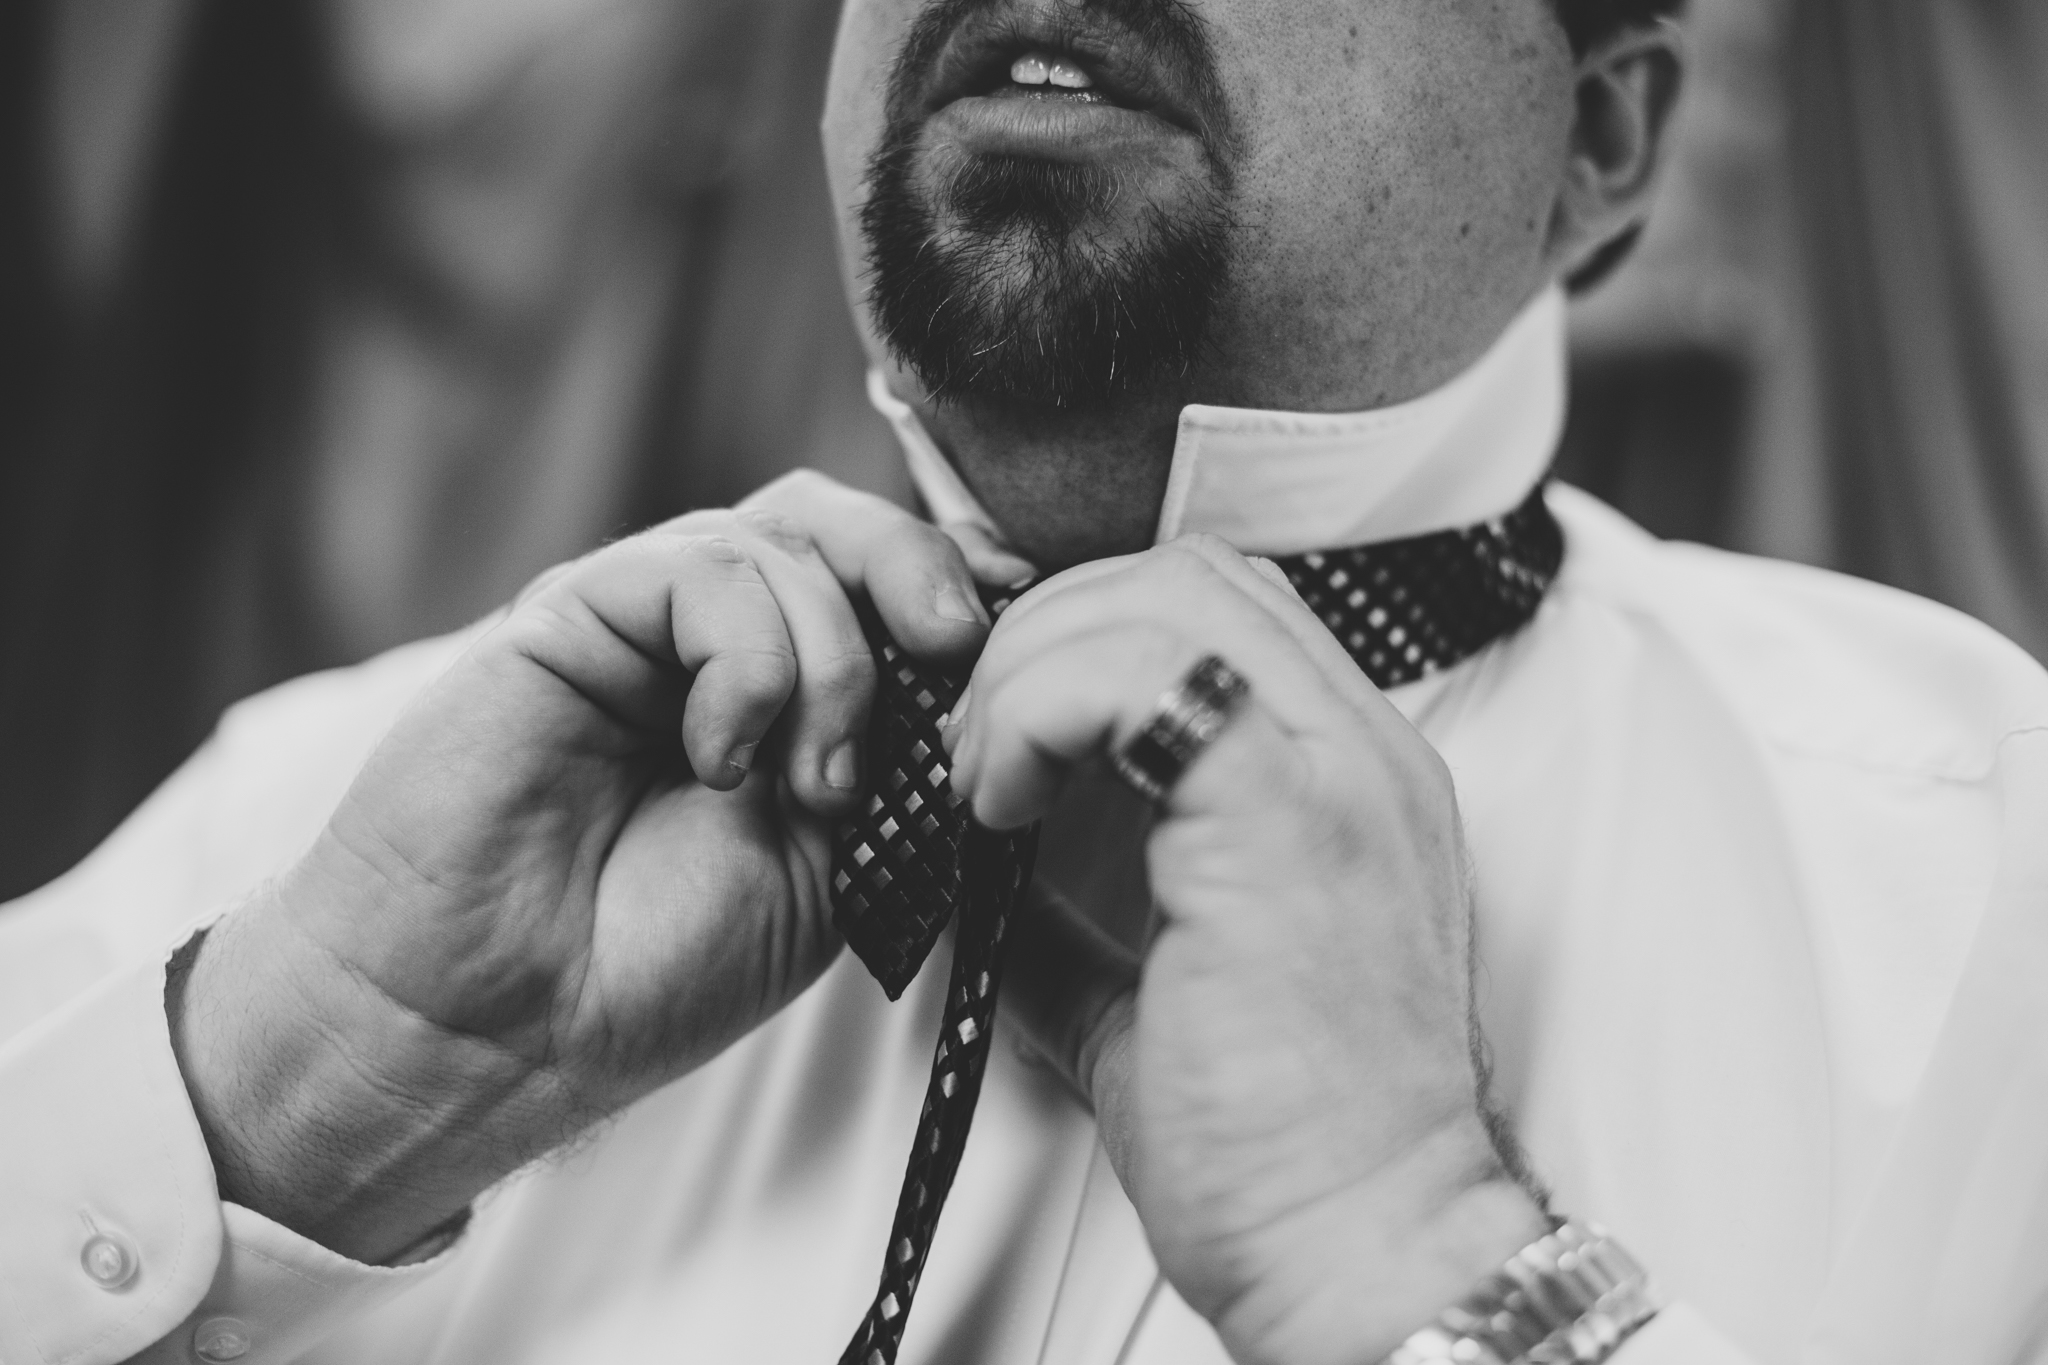 rs groom puts his tie on getting ready bw